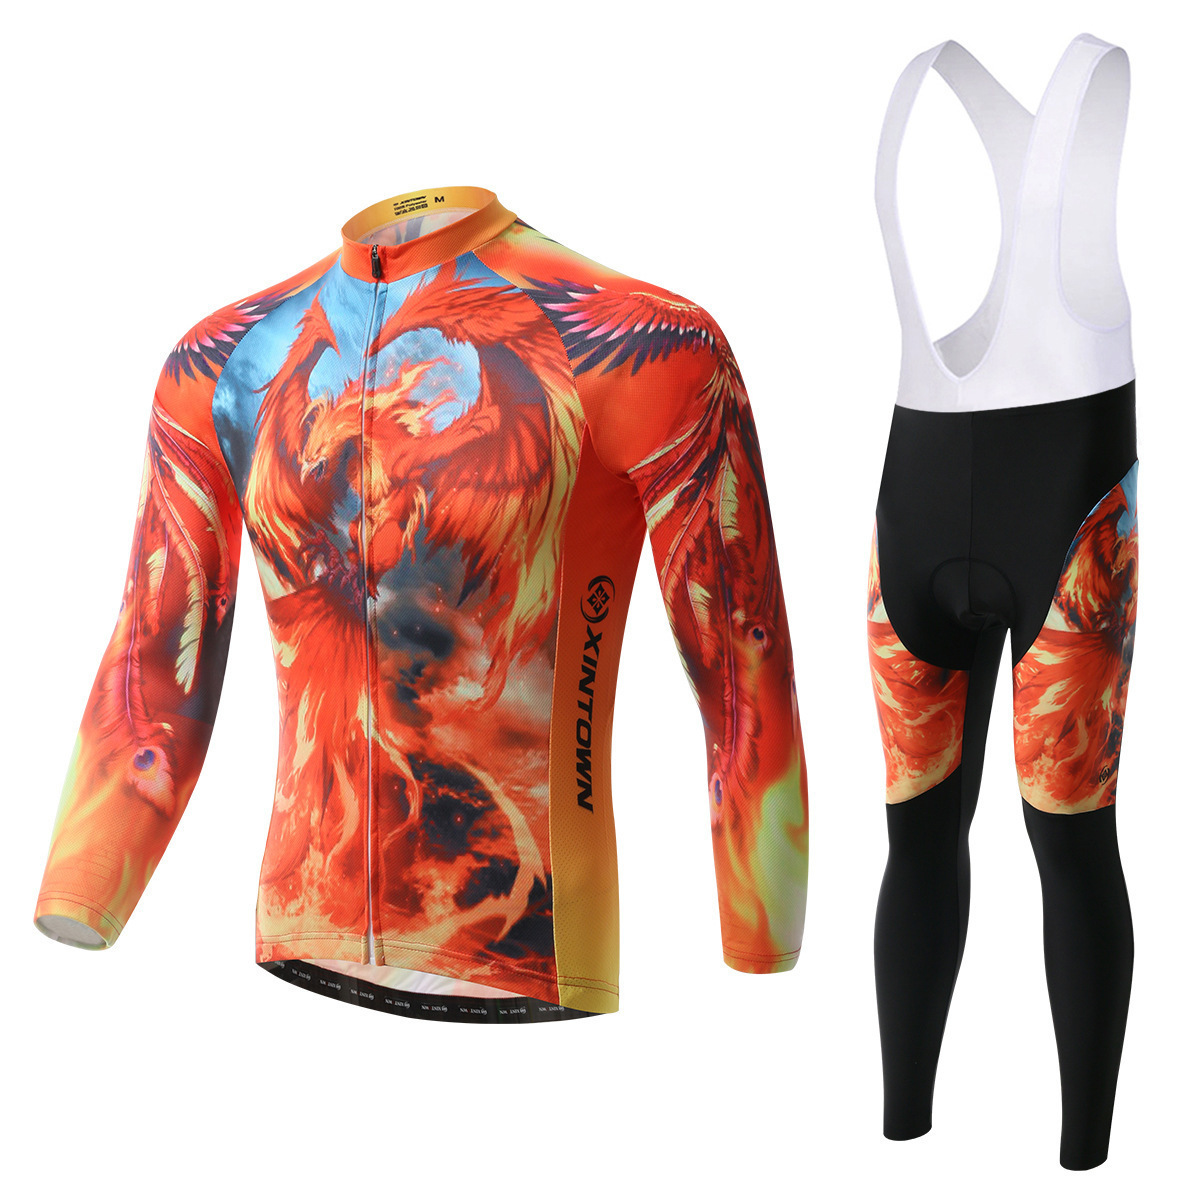 XINTOWN Long Sleeve Men's Cycling Jersey Sets Breathable 3D Pad Bib Pants Bicycle Sportswear Bike Apparel Cycling Clothing custom made cheap cycling jersey customized bike uniform sportswear manufacturers oem service bicycle bib shorts with your logo